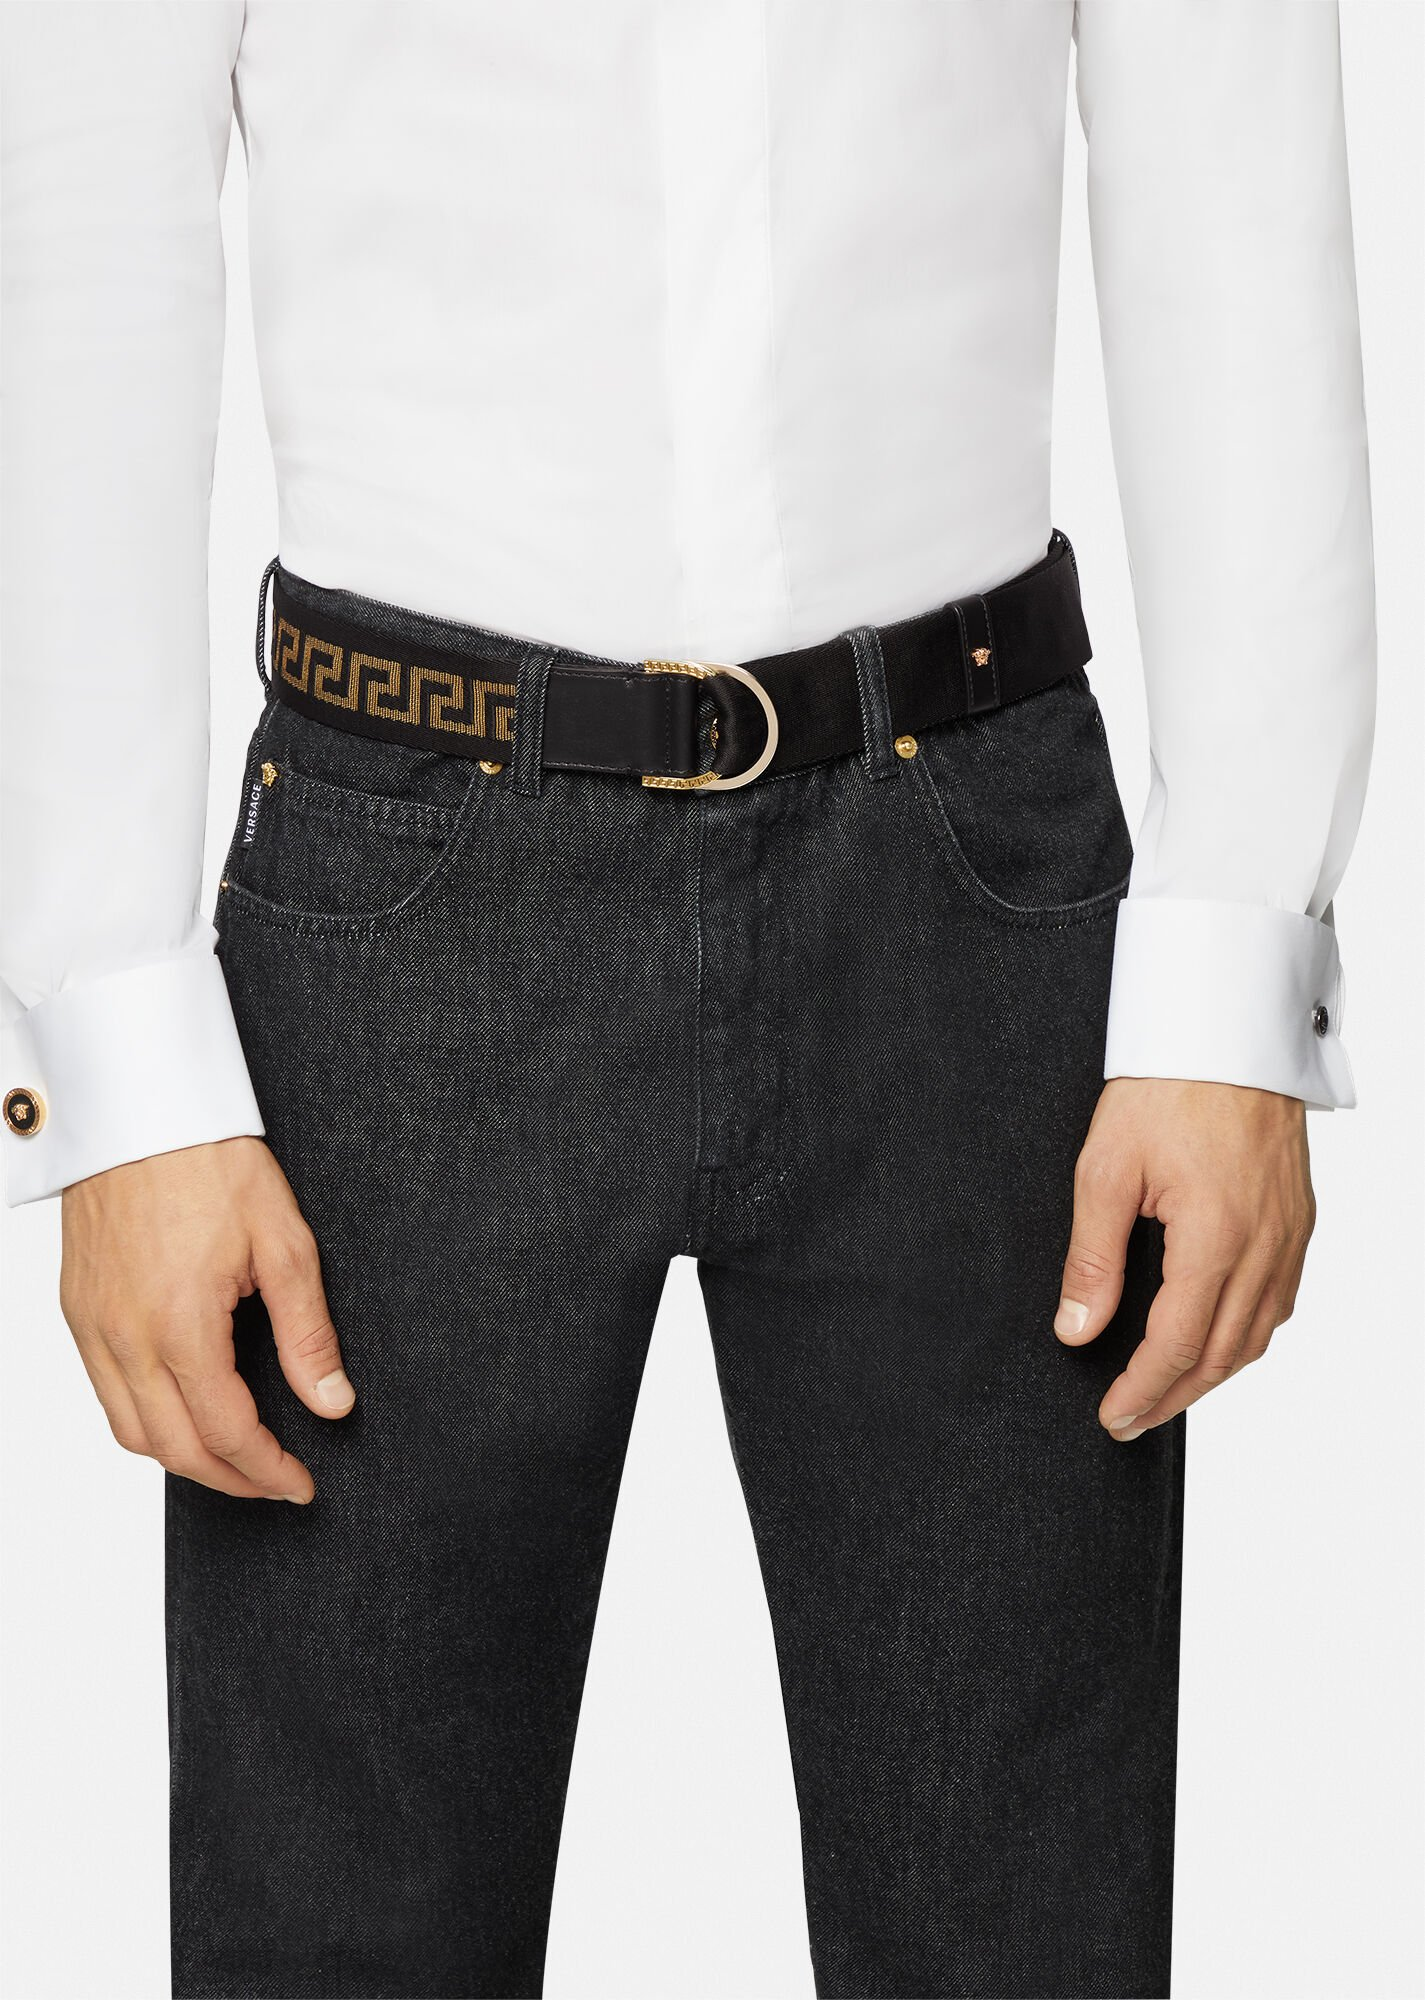 versace belts